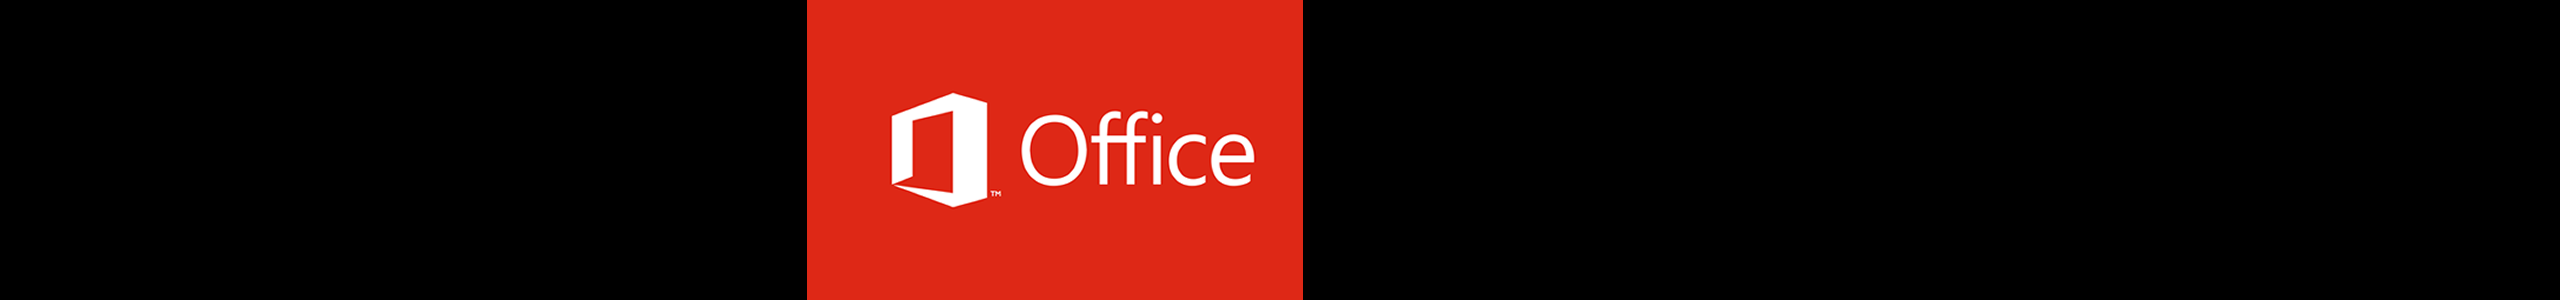 Microsoft Office 2013 Preview – 1